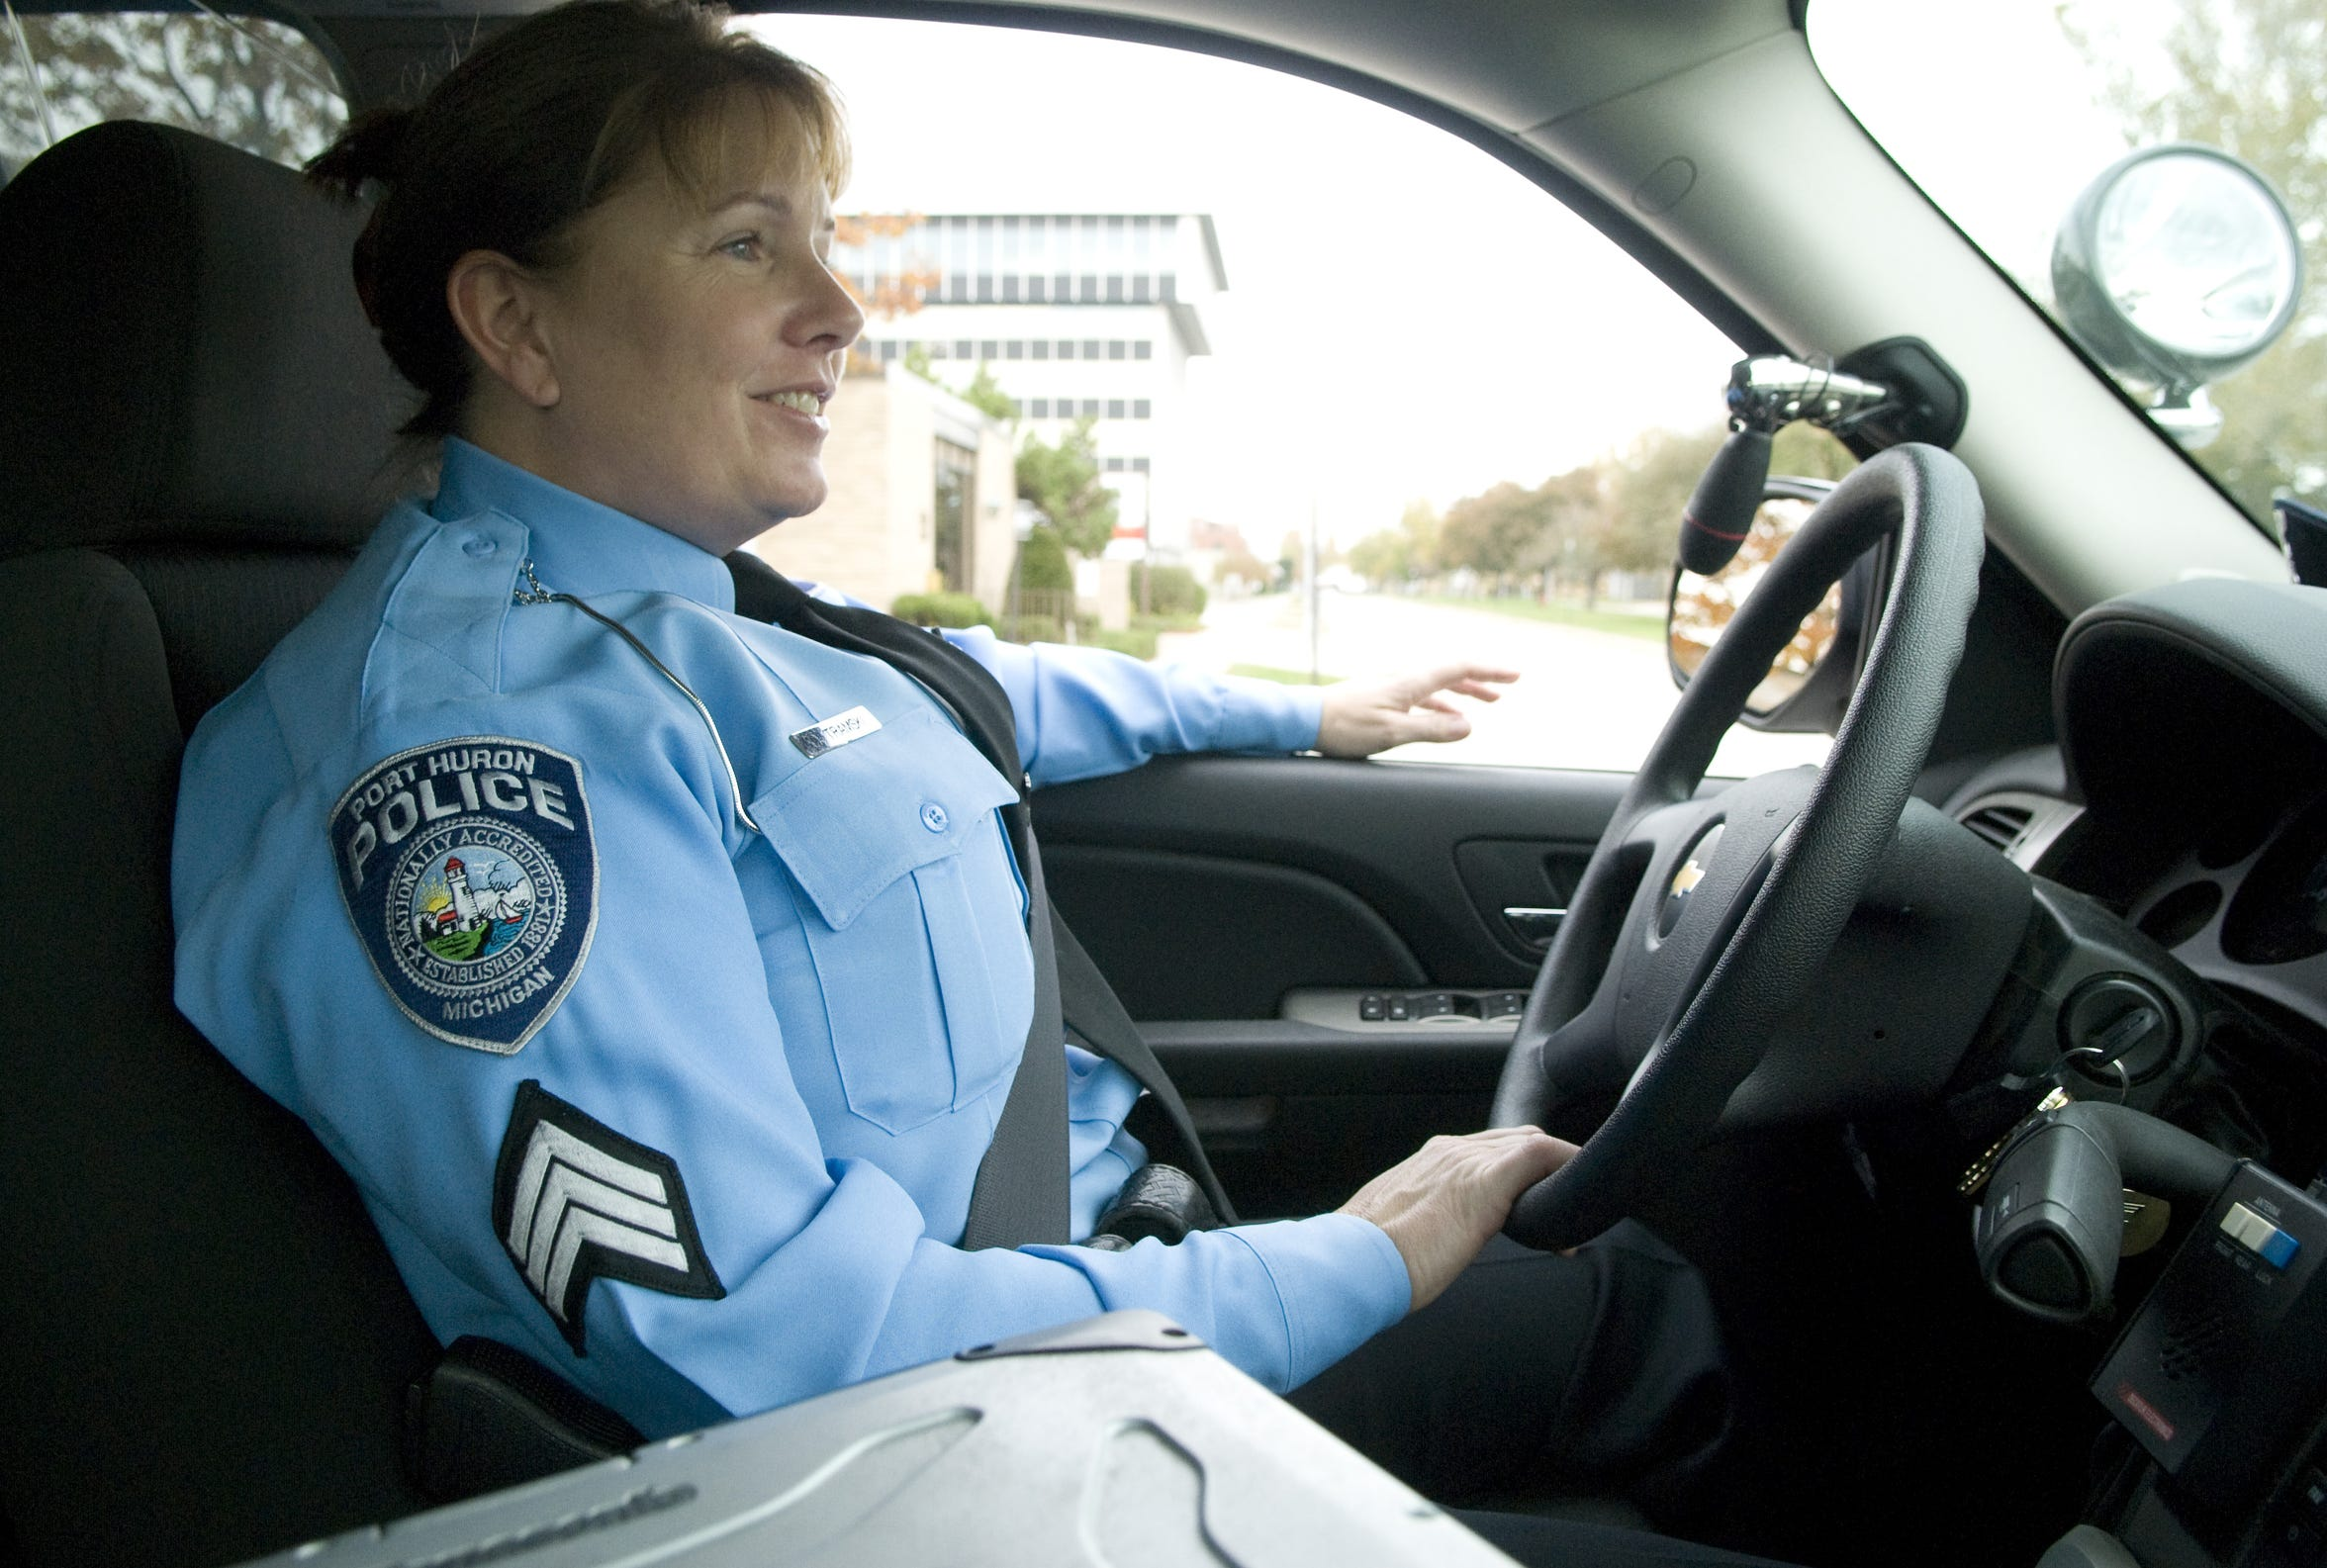 Sgt. Diana Tramski rides in her patrol vehicle through downtown Port Huron in October 2010. She was the first female officer employed by the Port Huron Police Department and a mentor cited among the force's long-time female officers.